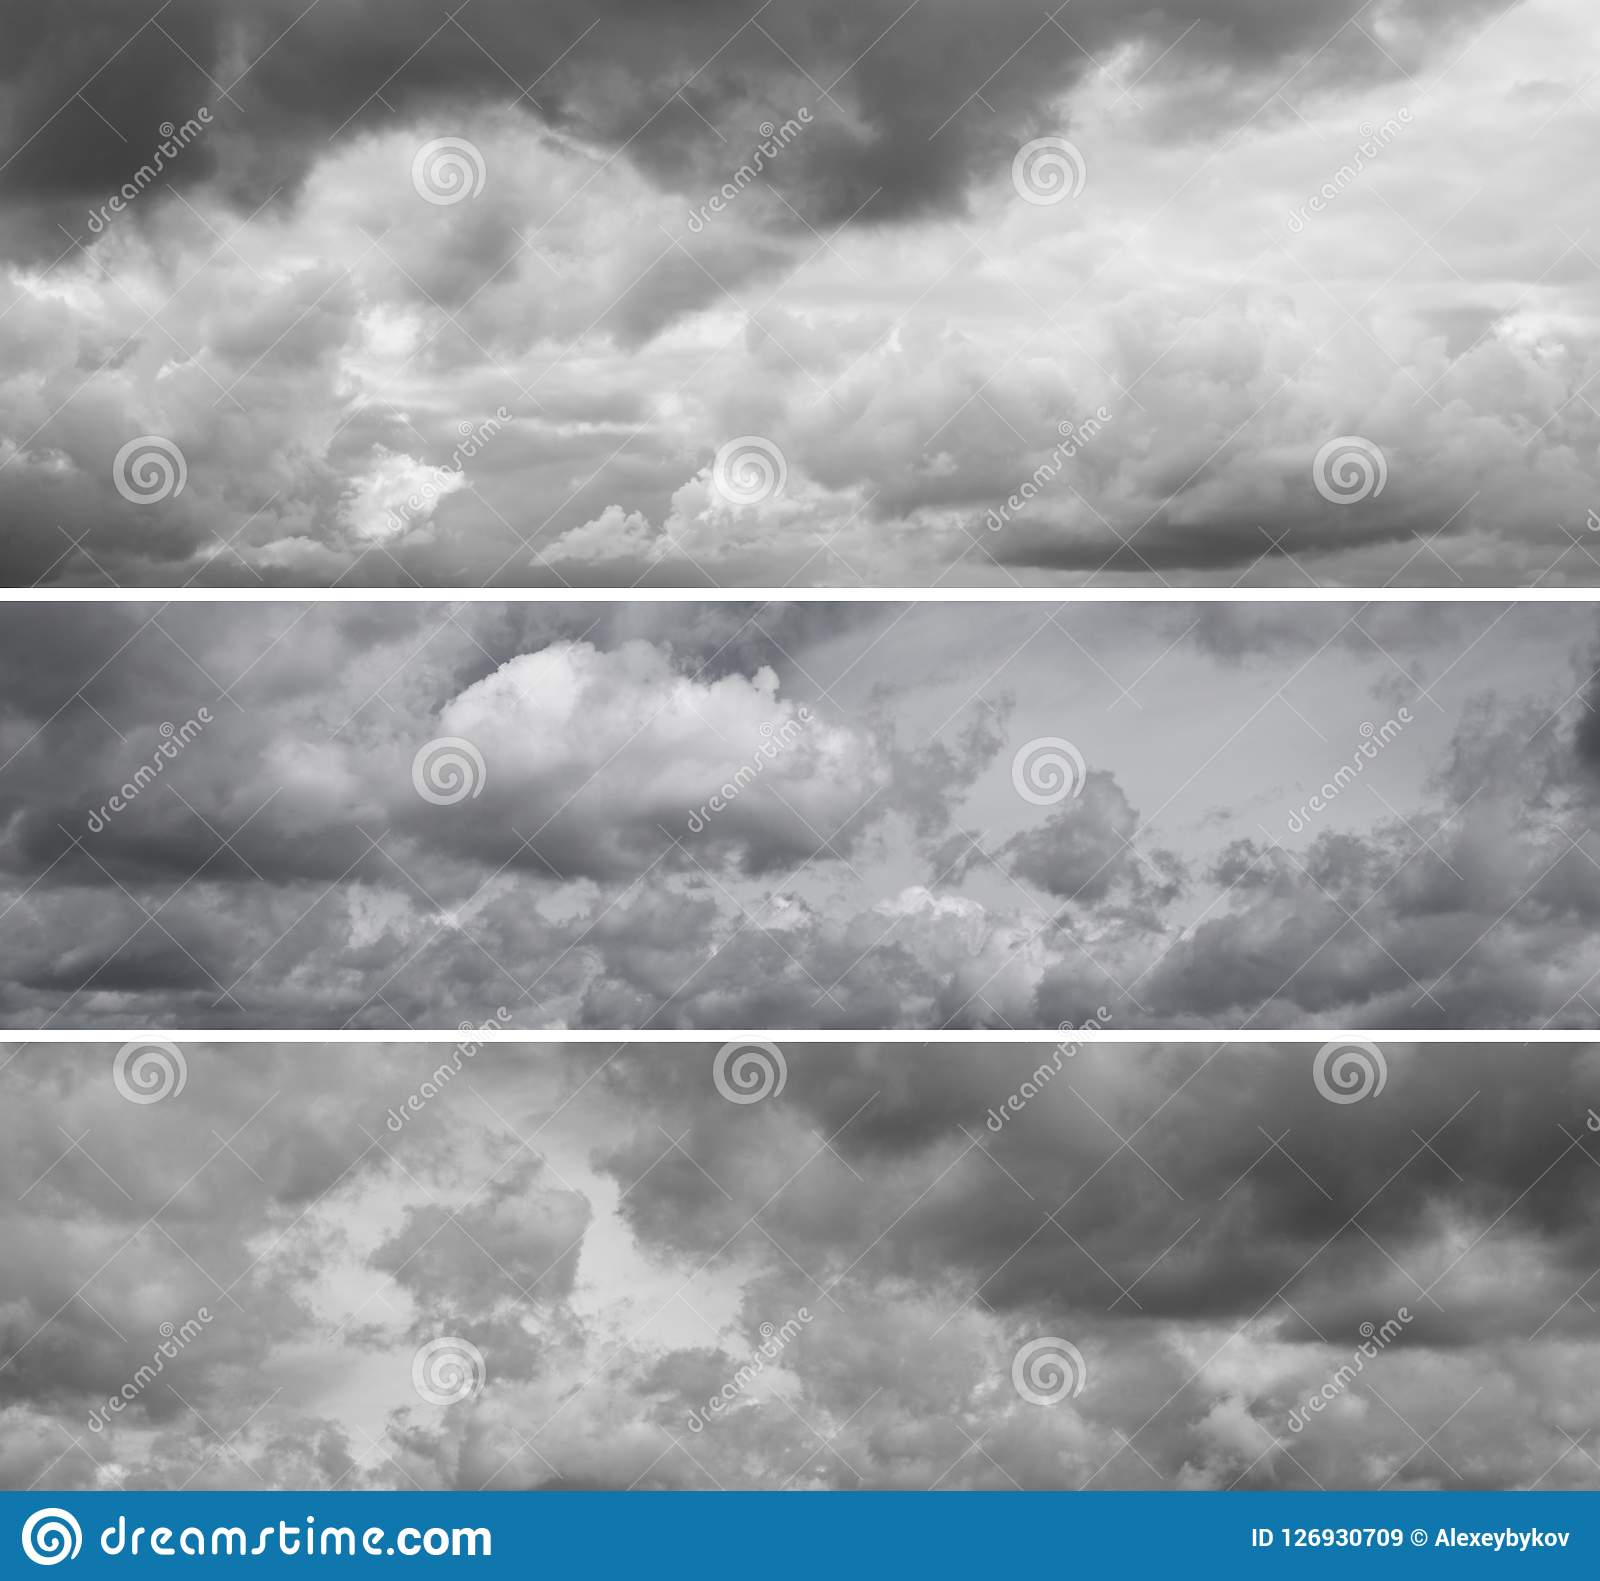 Three different panoramas of cloudy gray sky.